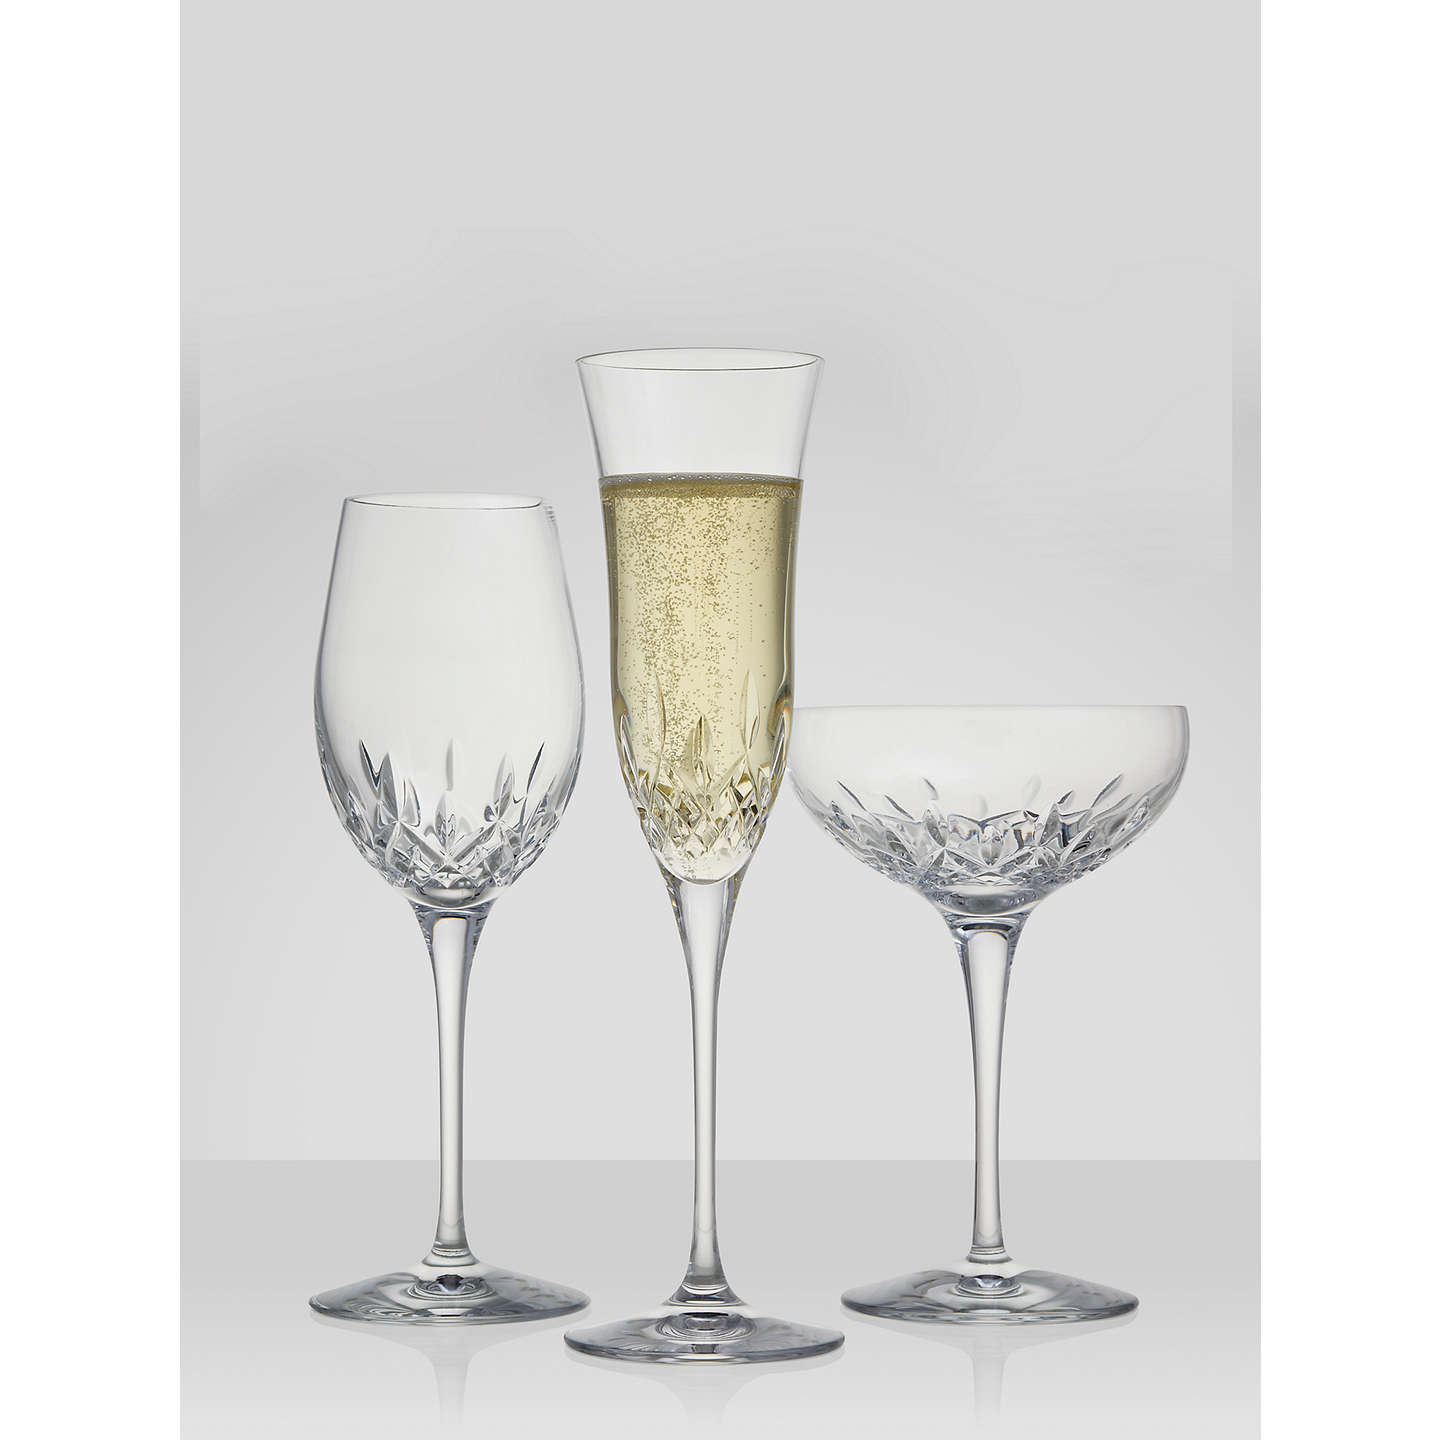 BuyWaterford Crystal Lismore Essence Cut Lead Crystal Champagne Flutes, Set of 2 Online at johnlewis.com